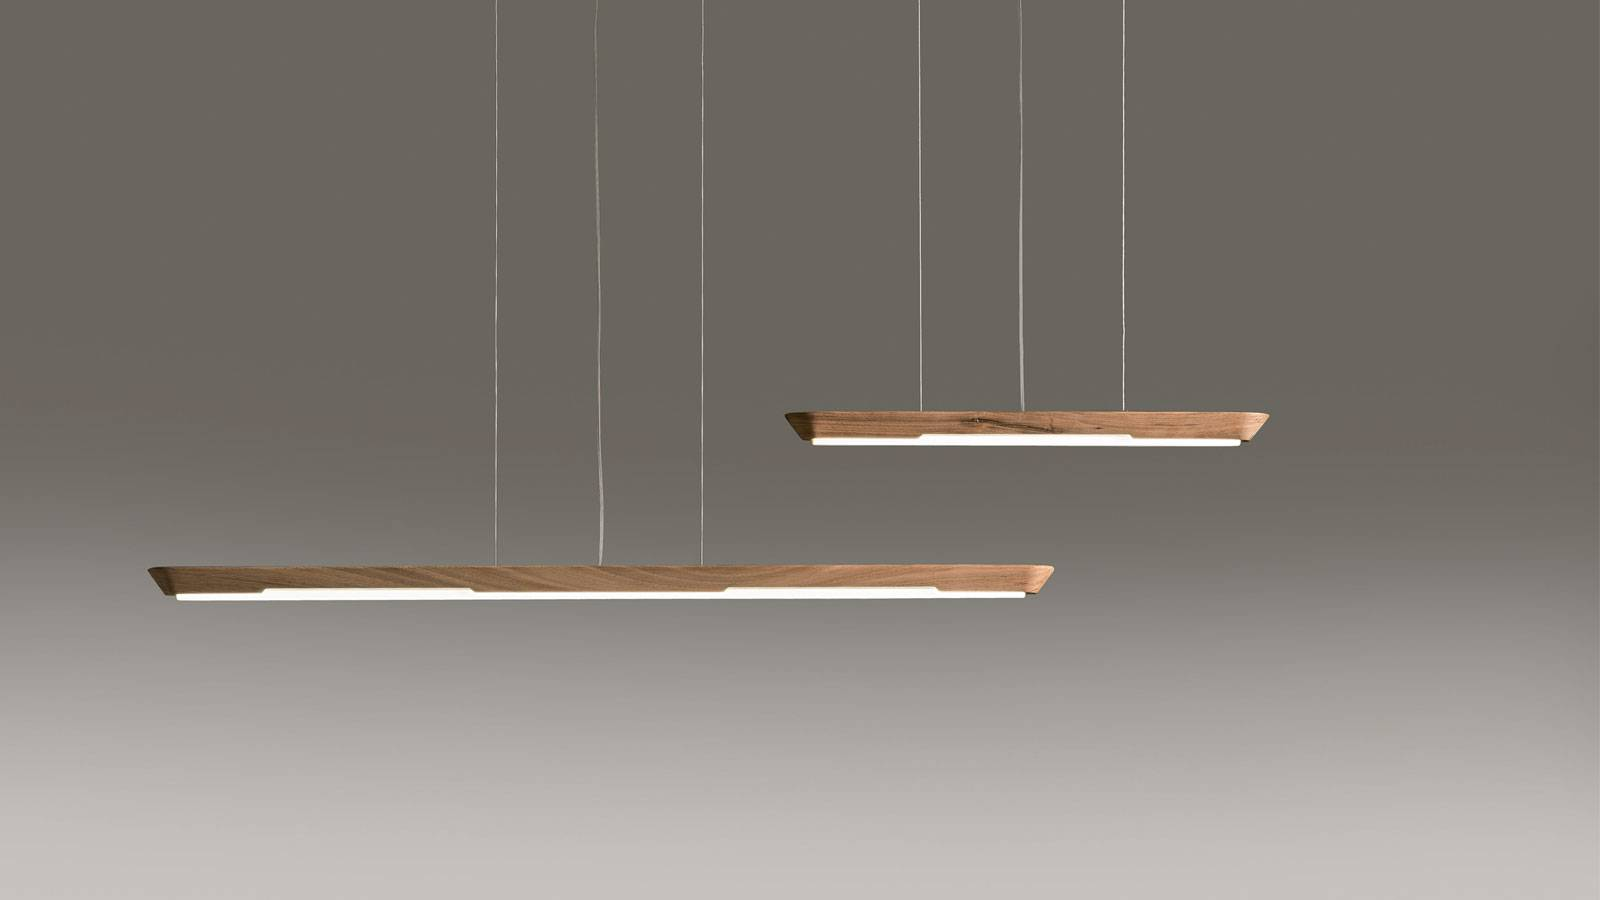 pendant lamp by Umberto Asnago for Penta